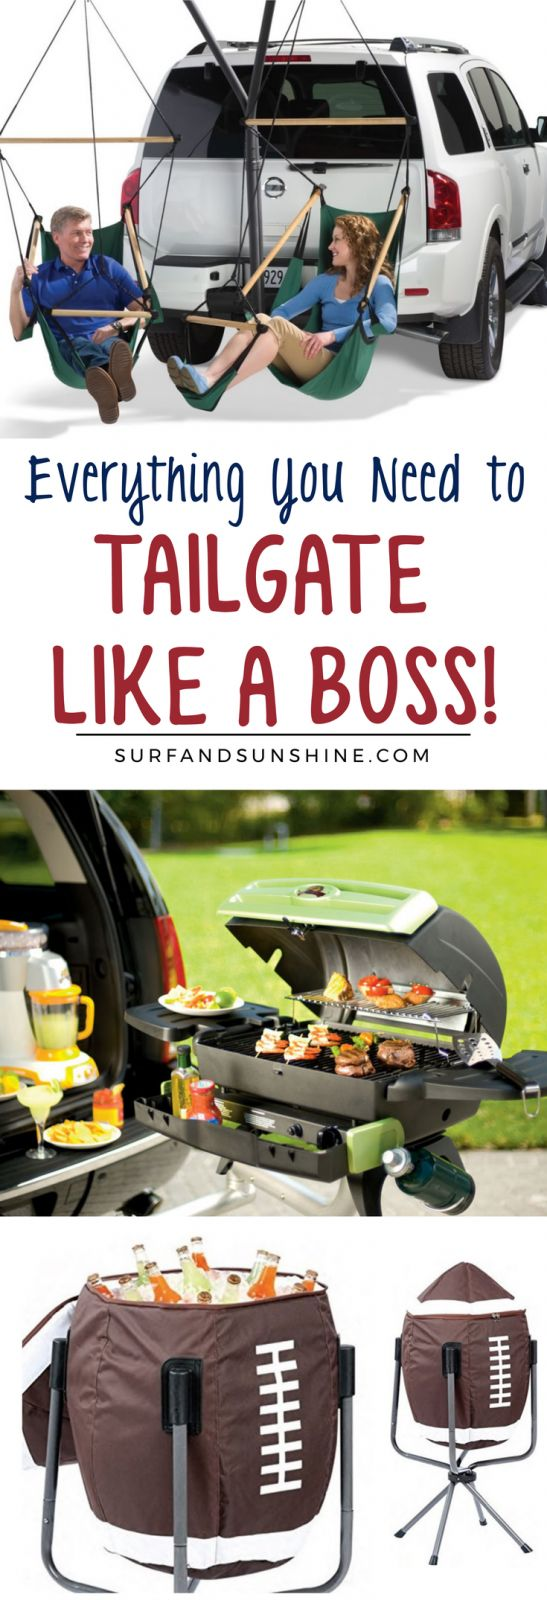 Football season is here and we're ready with this list of the most awesome tailgate gear every fan needs in order to tailgate like a boss! via @Jeanabeena